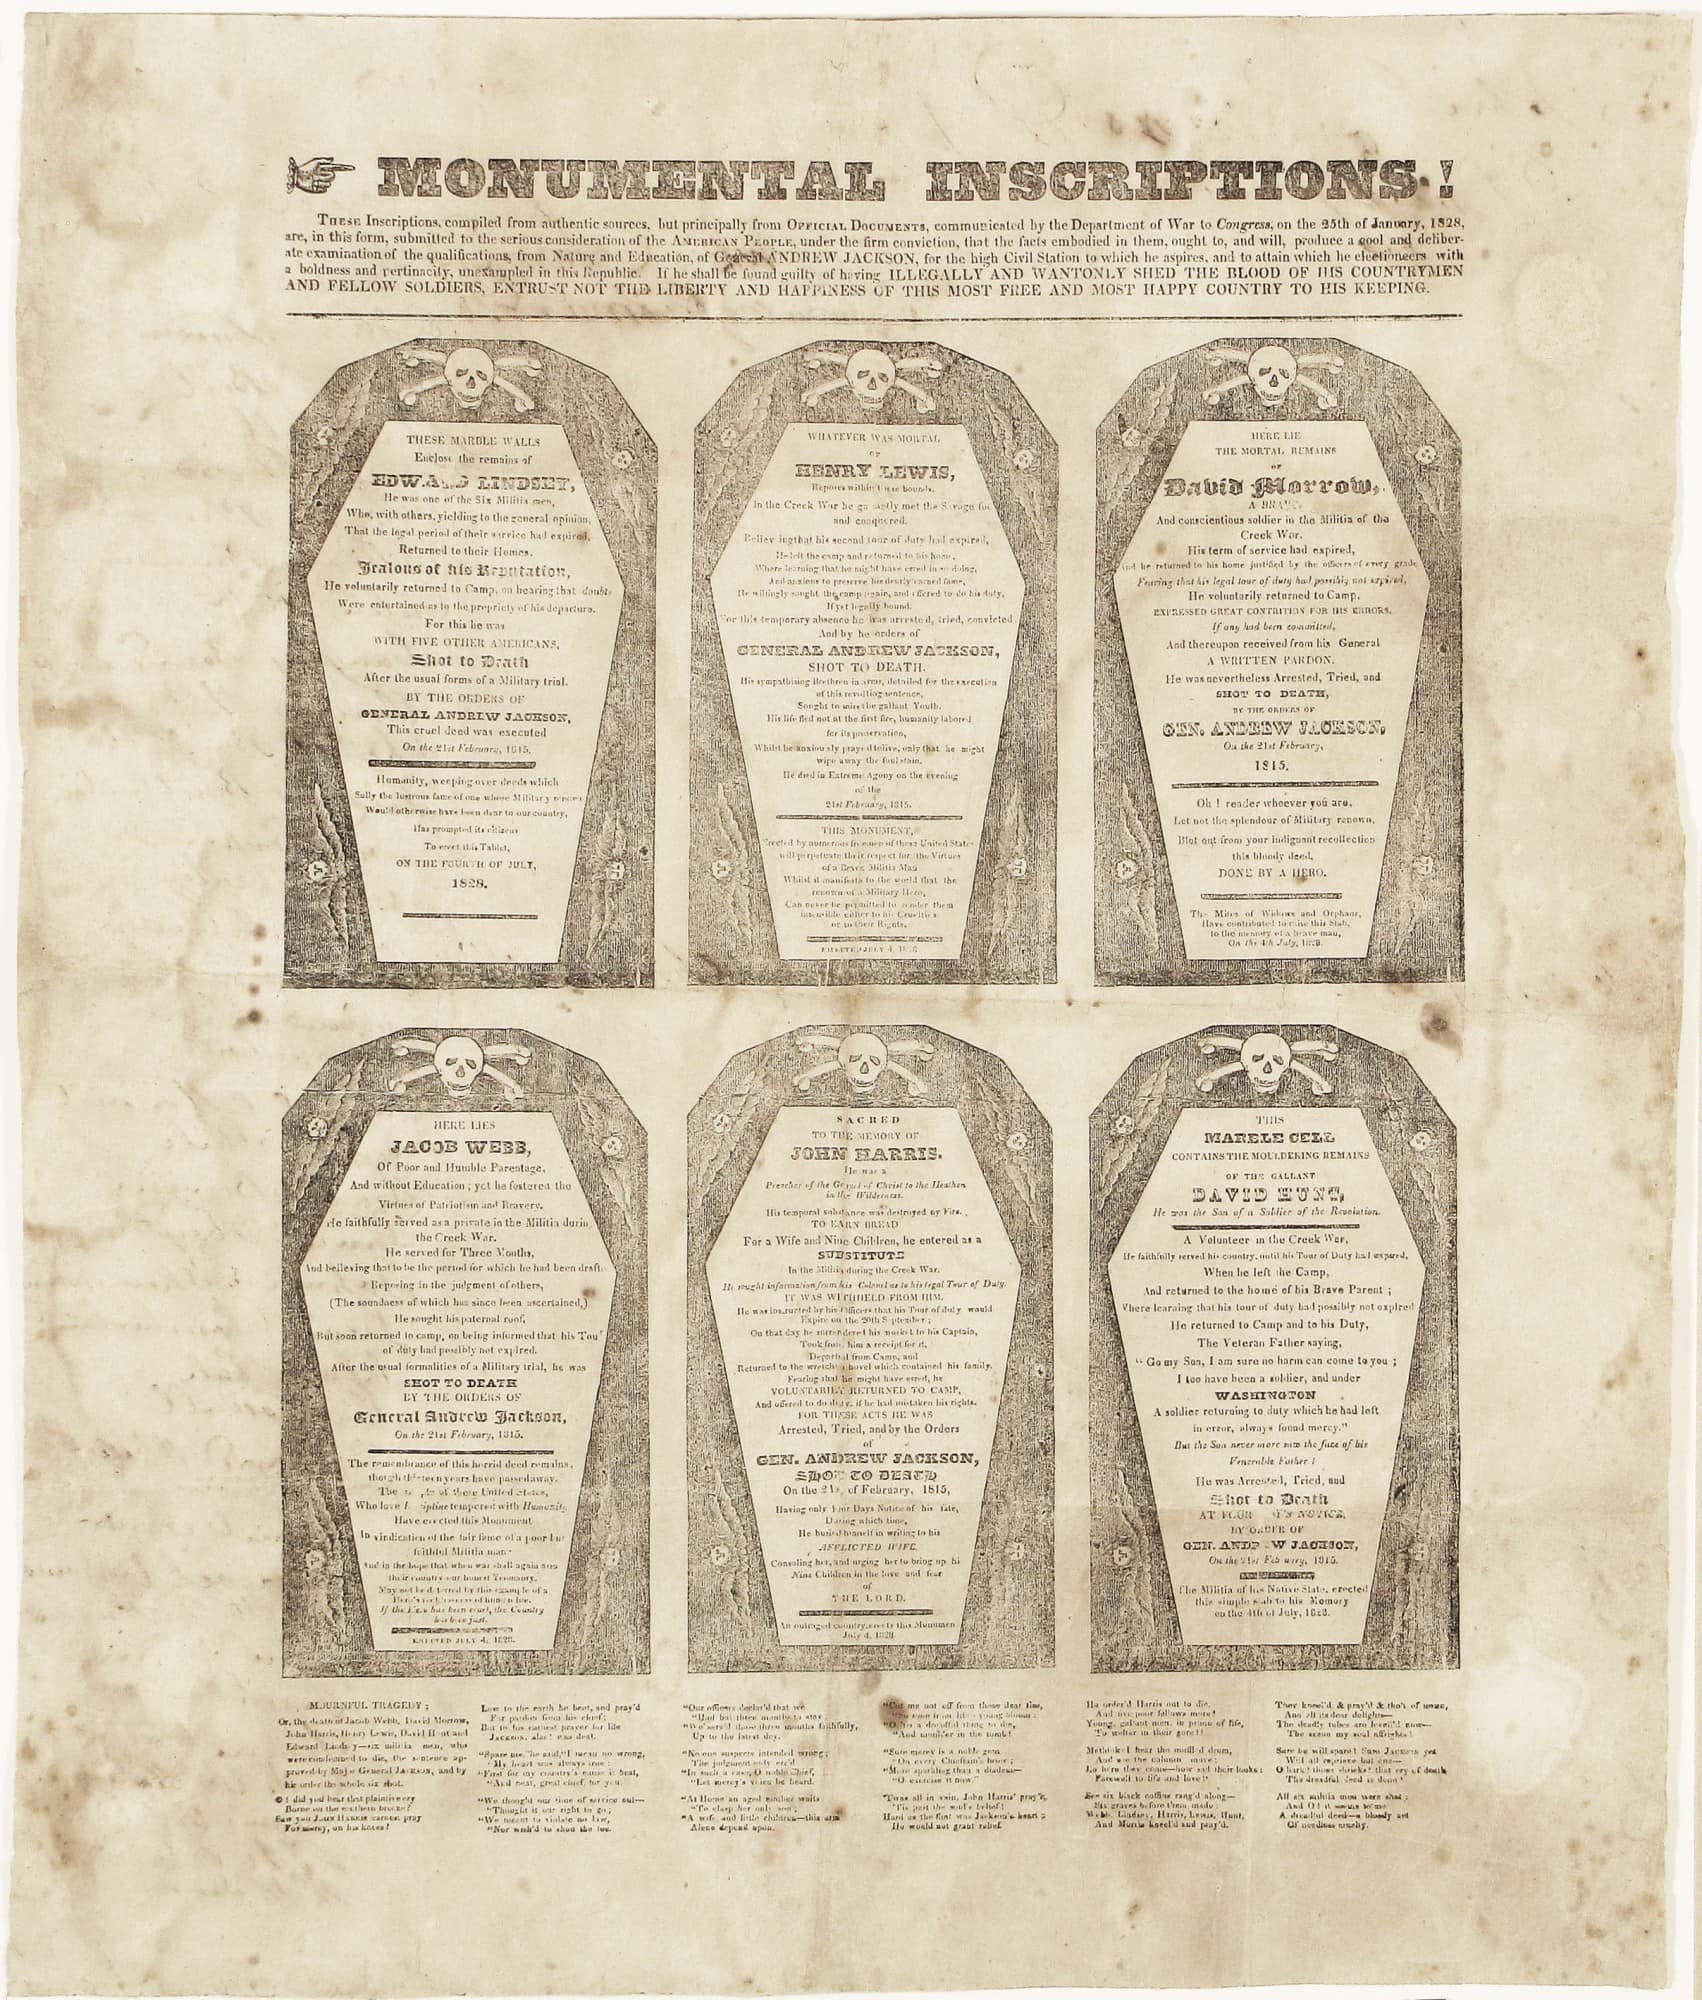 the first coffin handbill